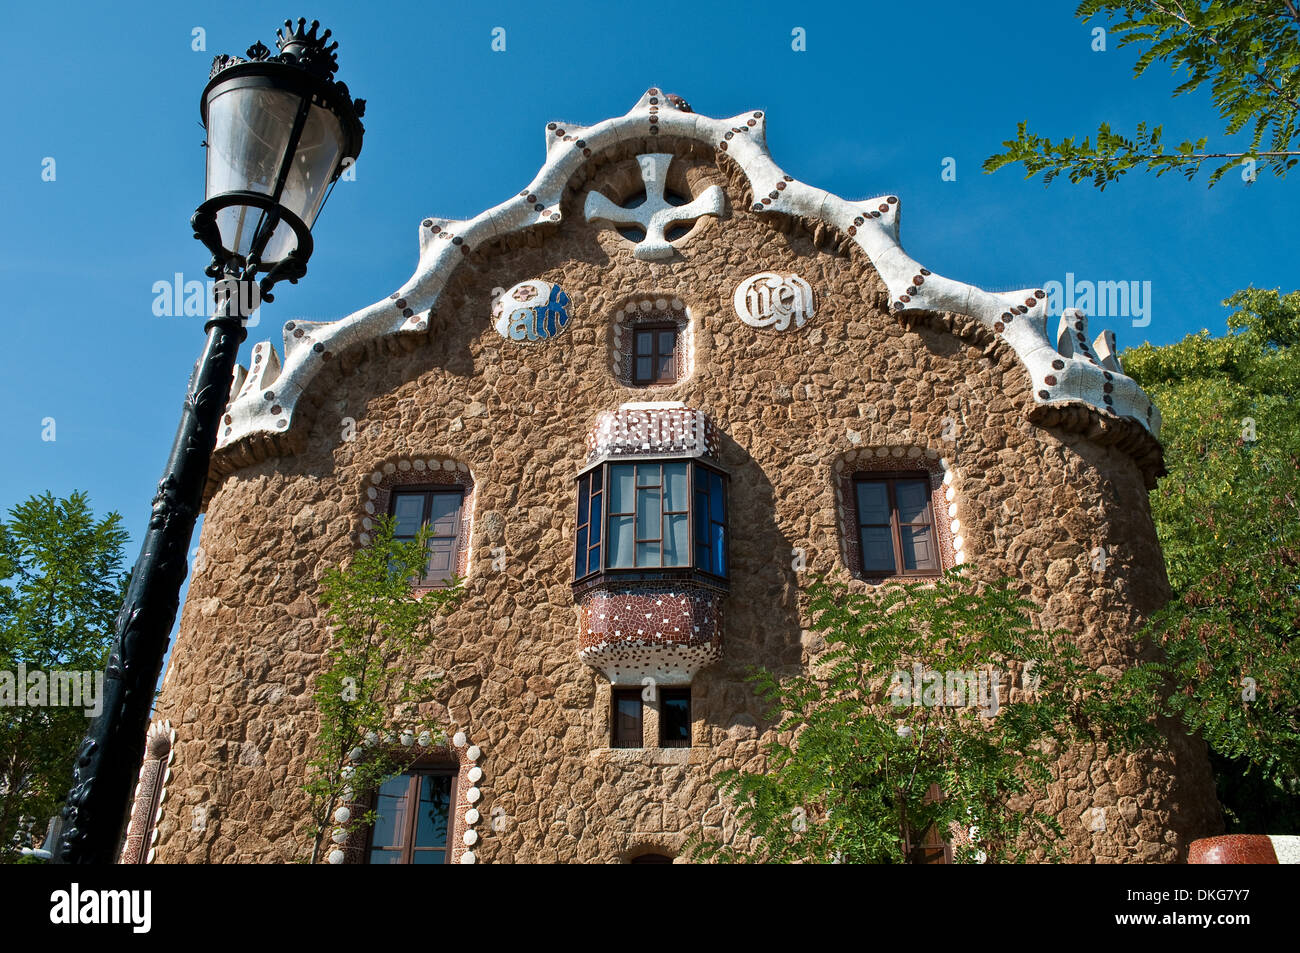 Fairytale building at the entrance, Park Guell, Barcelona, Catalonia, Spain - Stock Image